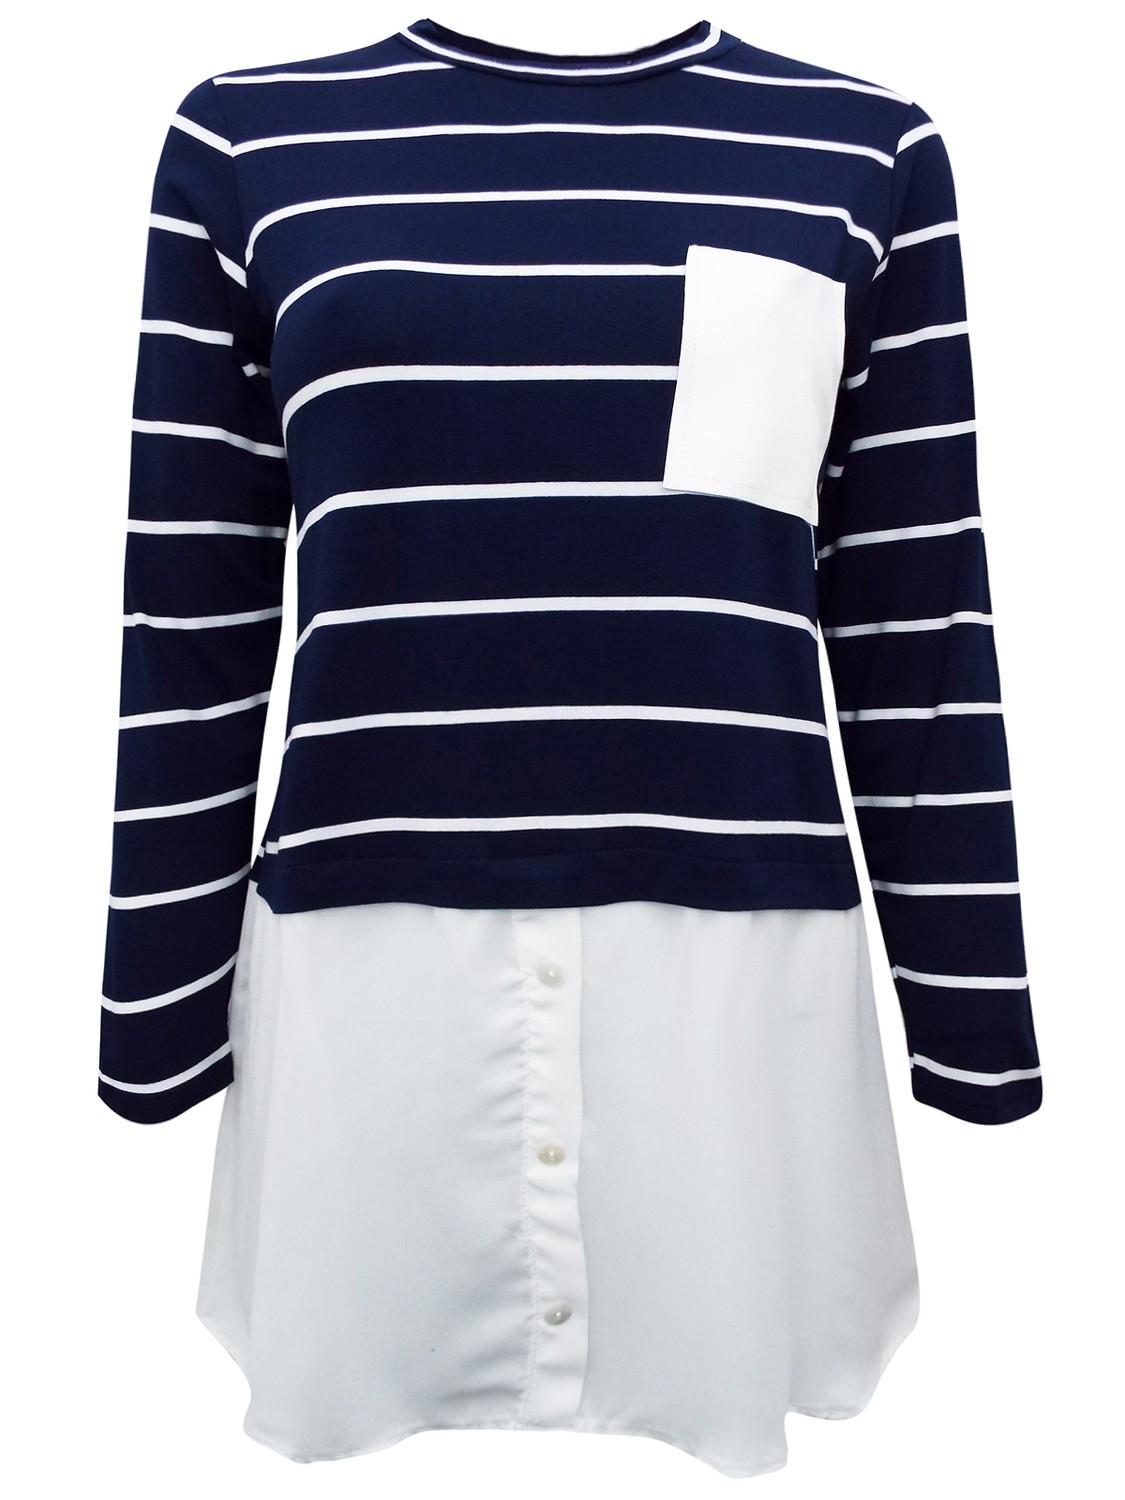 Navy Striped Long Sleeve Layered Jersey Top